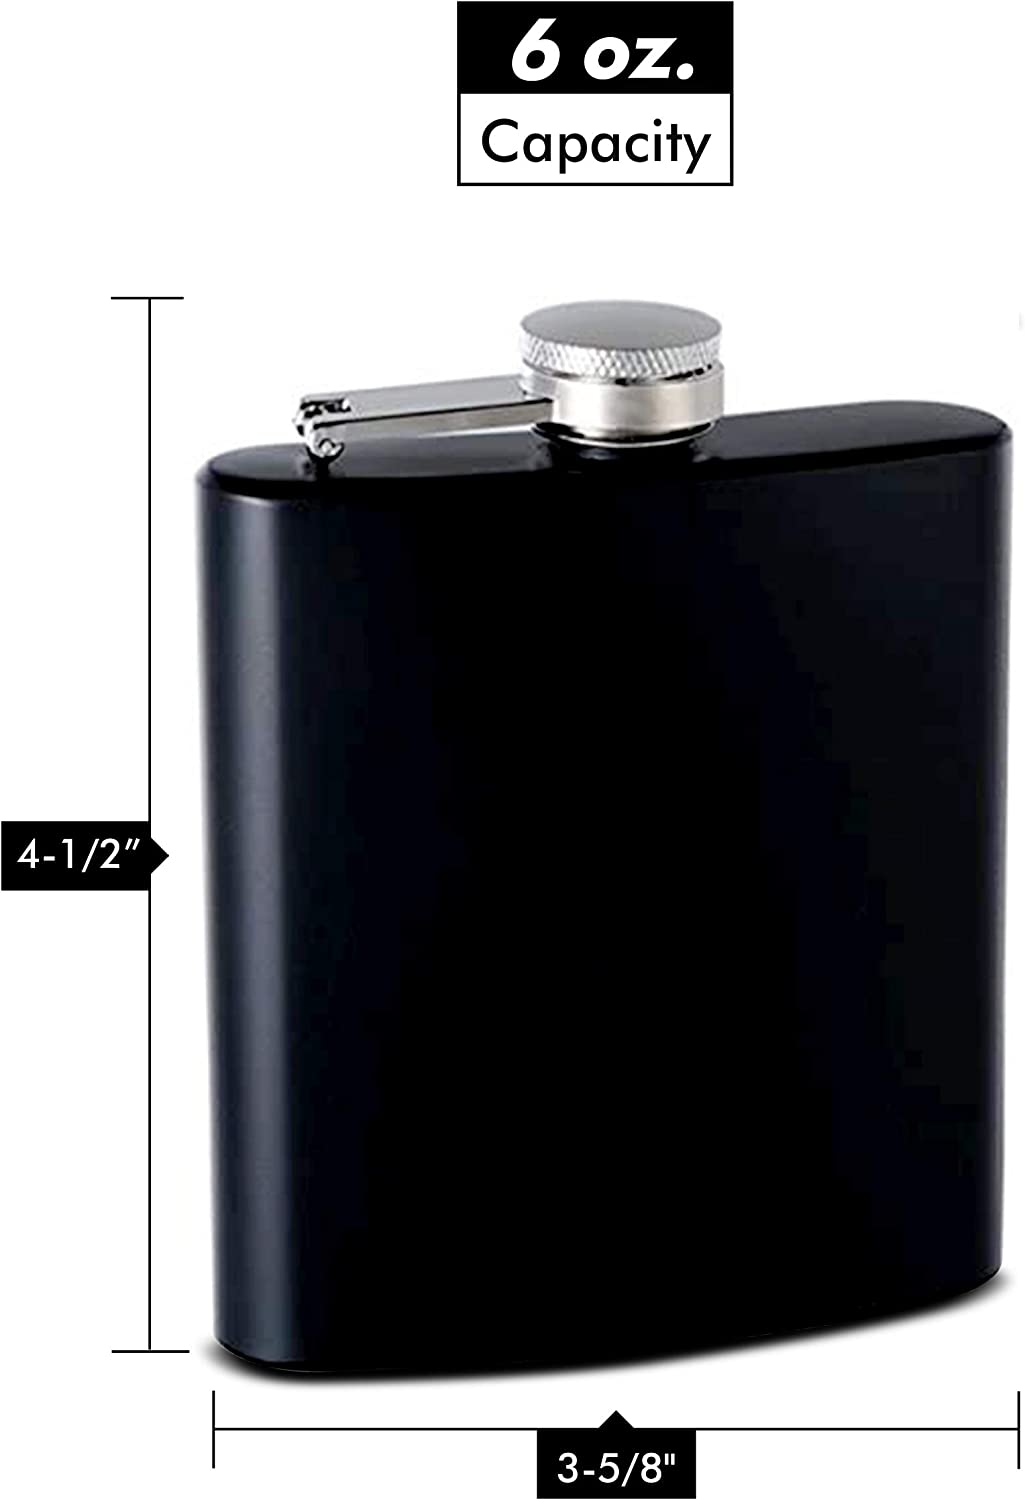 6oz Rubber Coated Stainless Steel Hip Flask Assorted Colors Black By Top Shelf Flasks Amazon Ca Home Kitchen